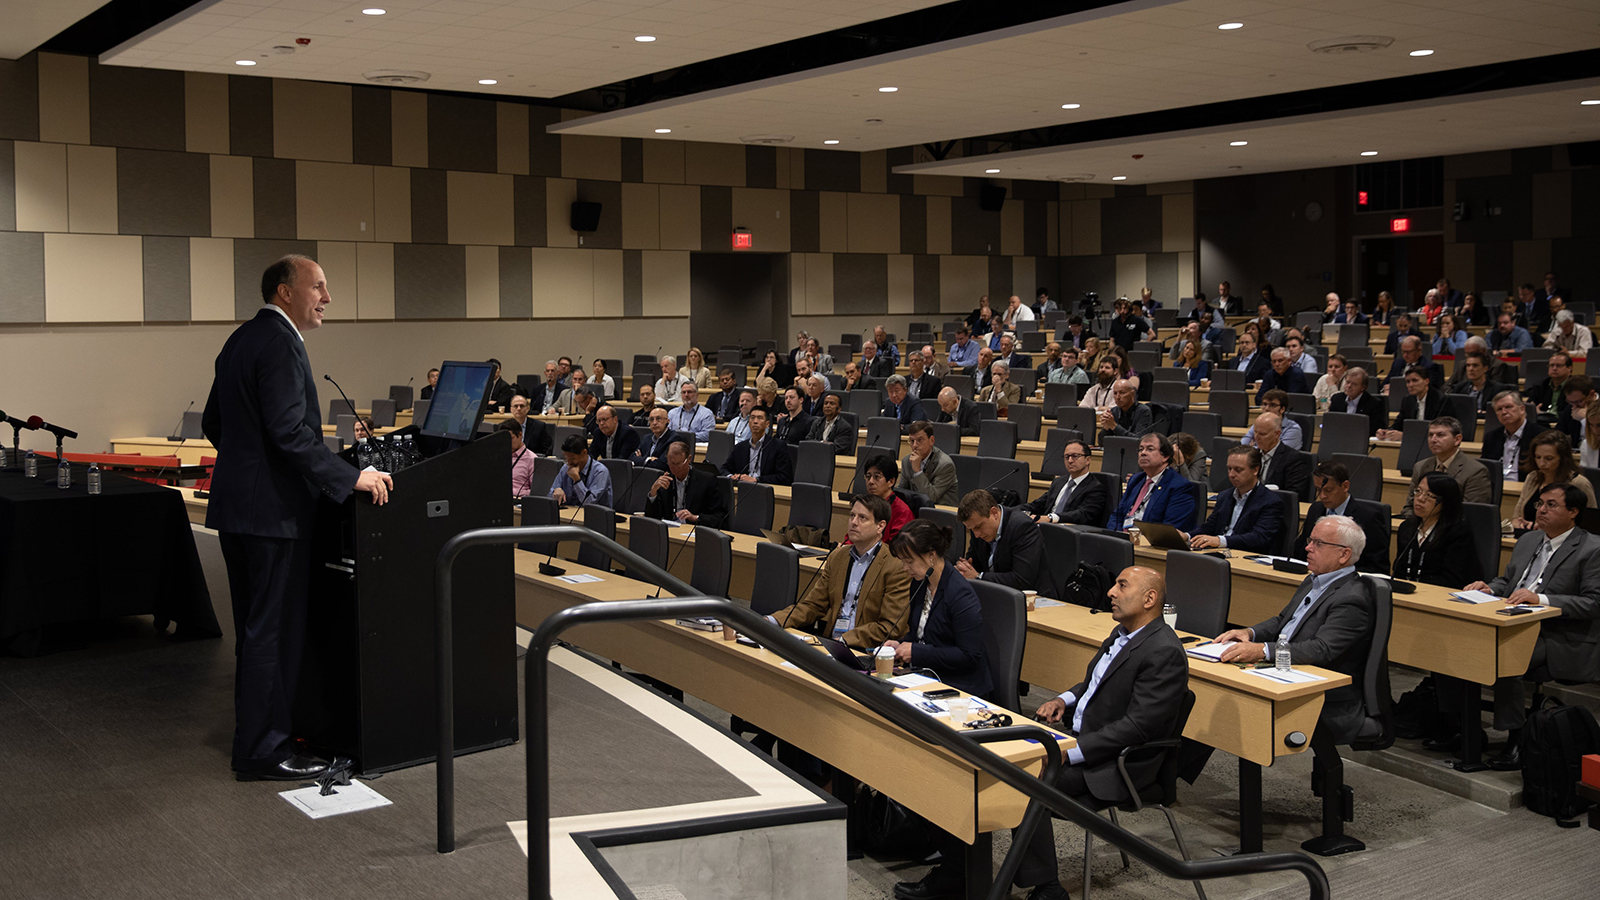 DOE Under Secretary for Science Paul Dabbar welcomed researchers to the InnovationXLab Energy Storage Summit today. (Image by SLAC National Accelerator Laboratory.)